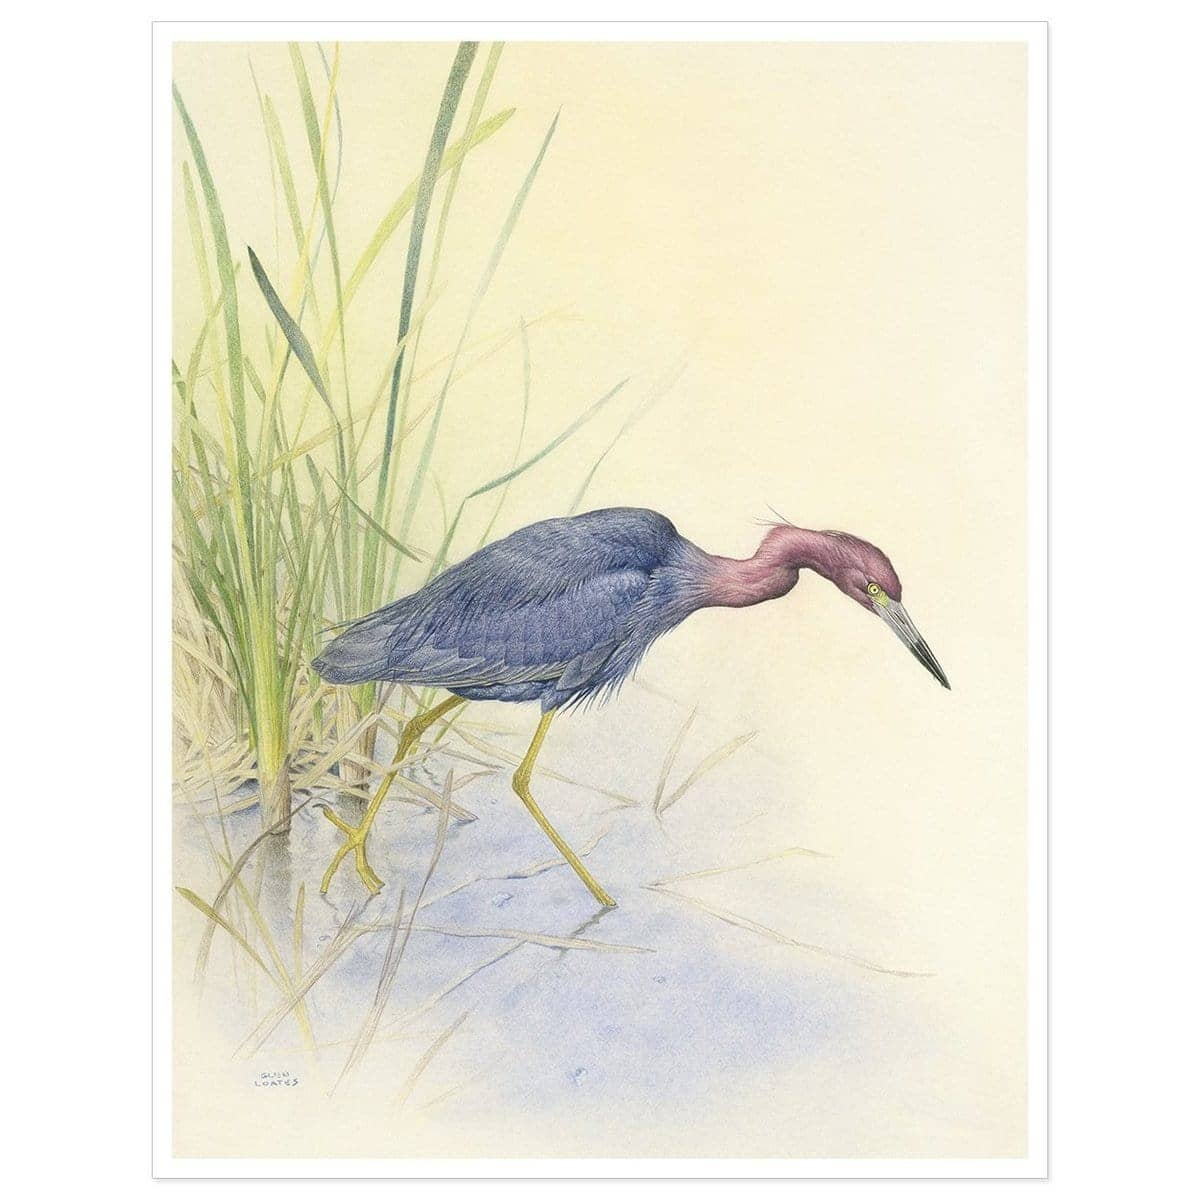 Purple Heron - Art Print by Glen Loates from the Glen Loates Store